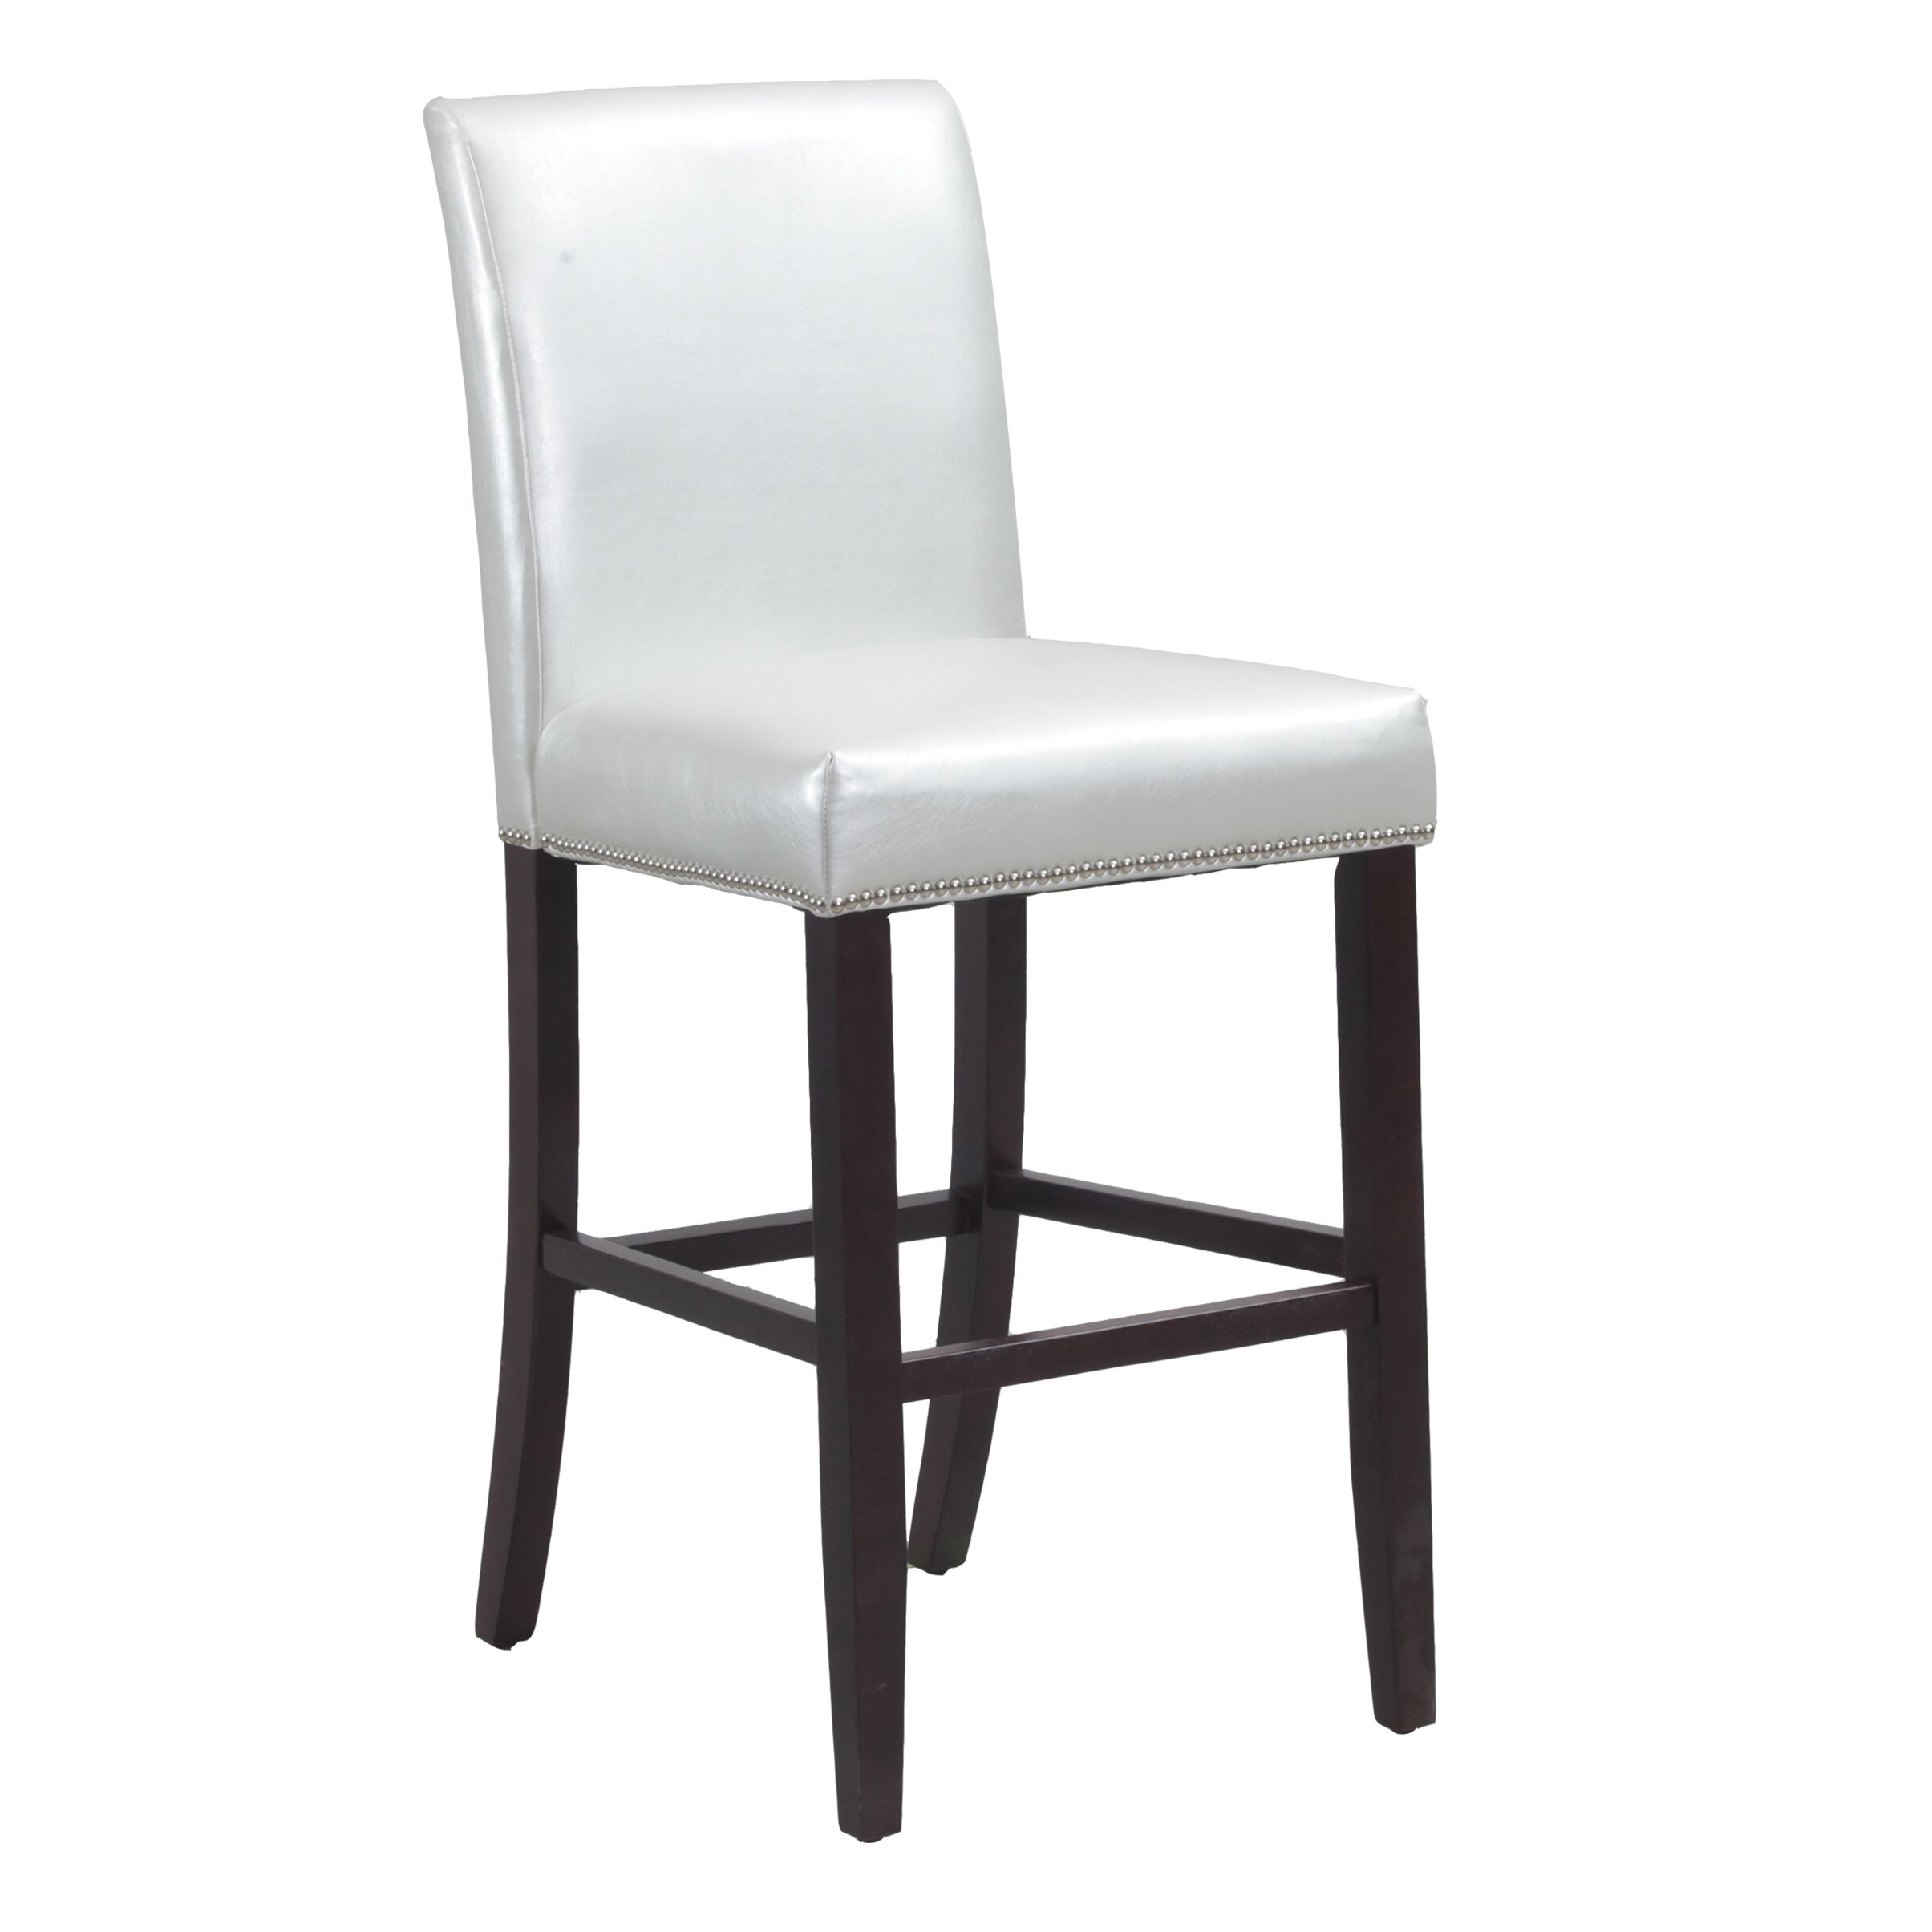 Powell 30quot Bar Stool amp Reviews Wayfair : 30 Bar Stool With Cushion 14D2032 from www.wayfair.com size 2409 x 2409 jpeg 222kB